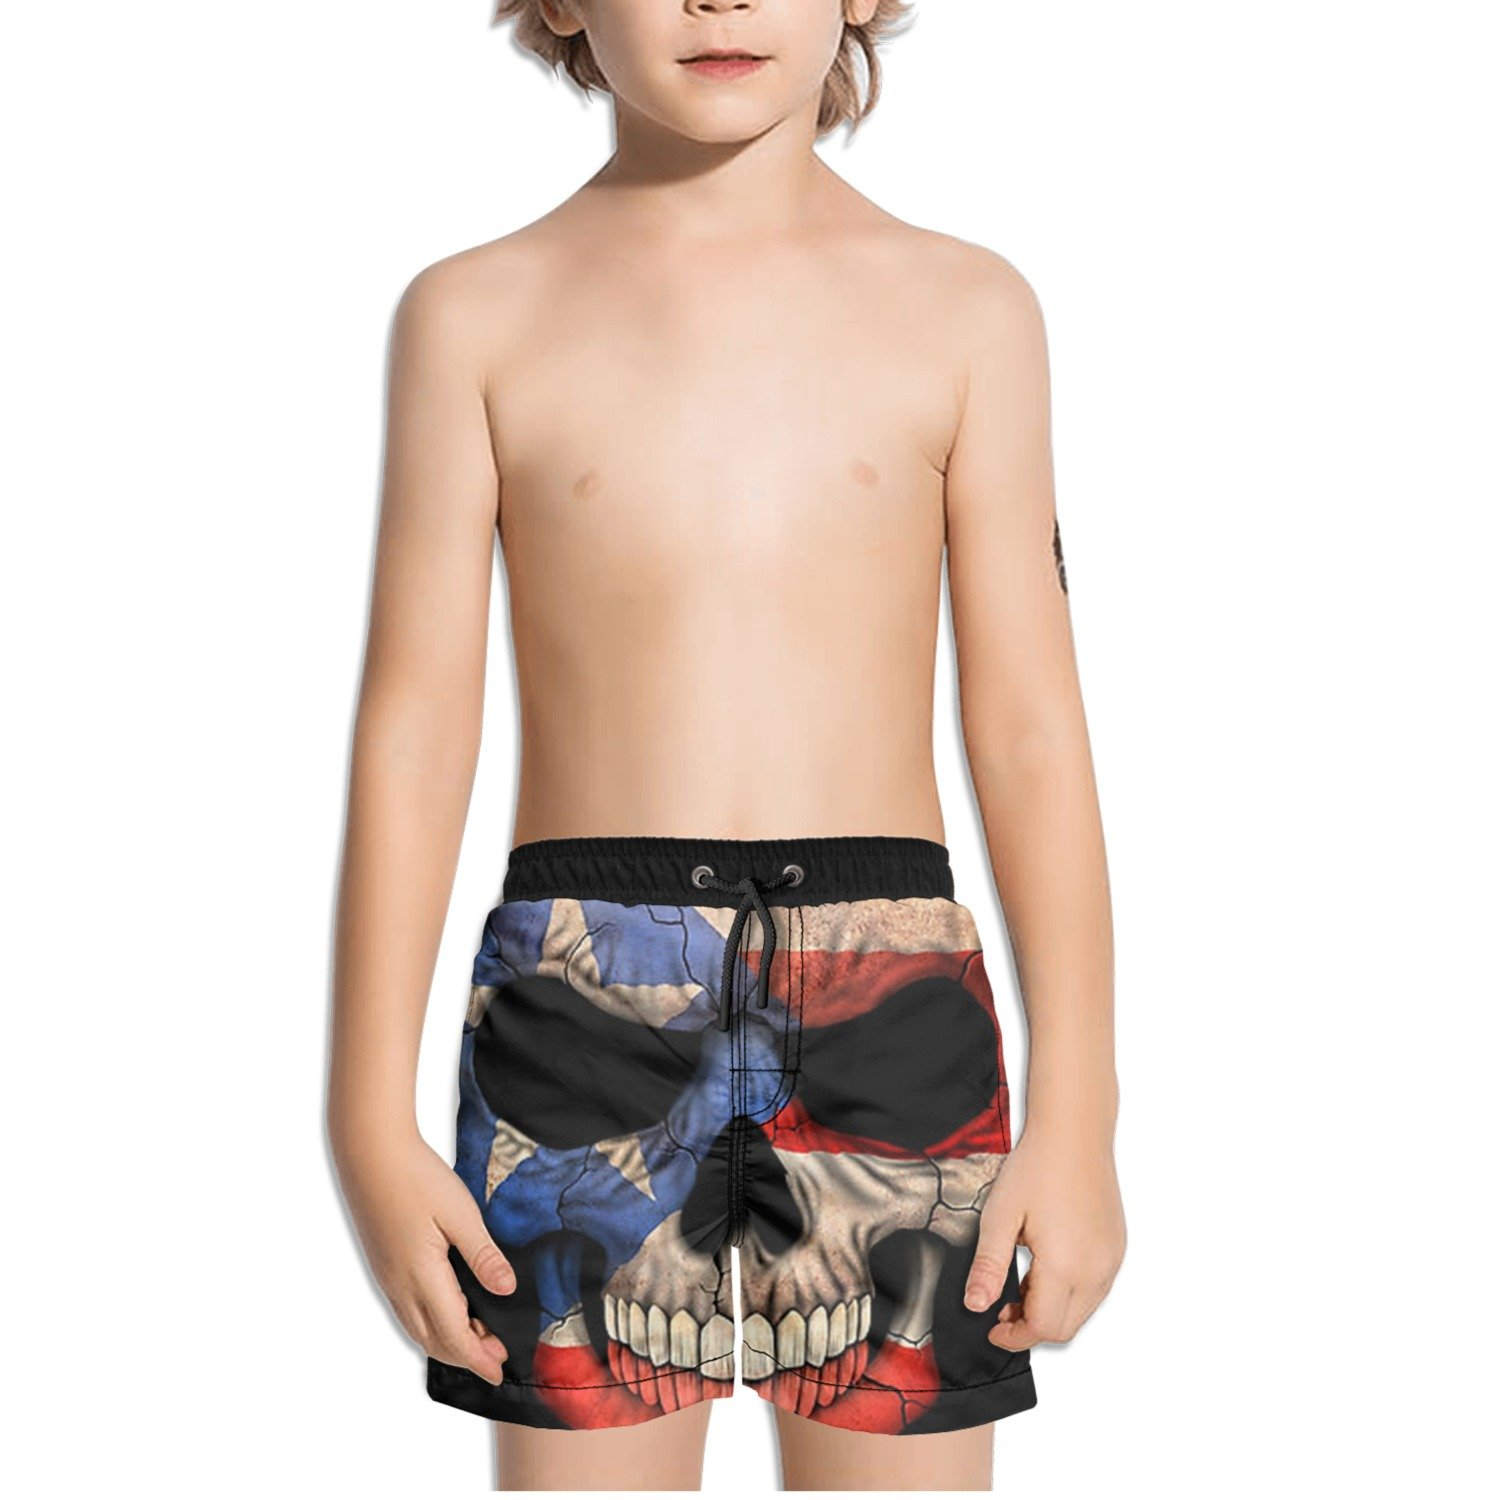 Ouxioaz Boys Swim Trunk Puerto Rican Flag Skull Beach Board Shorts